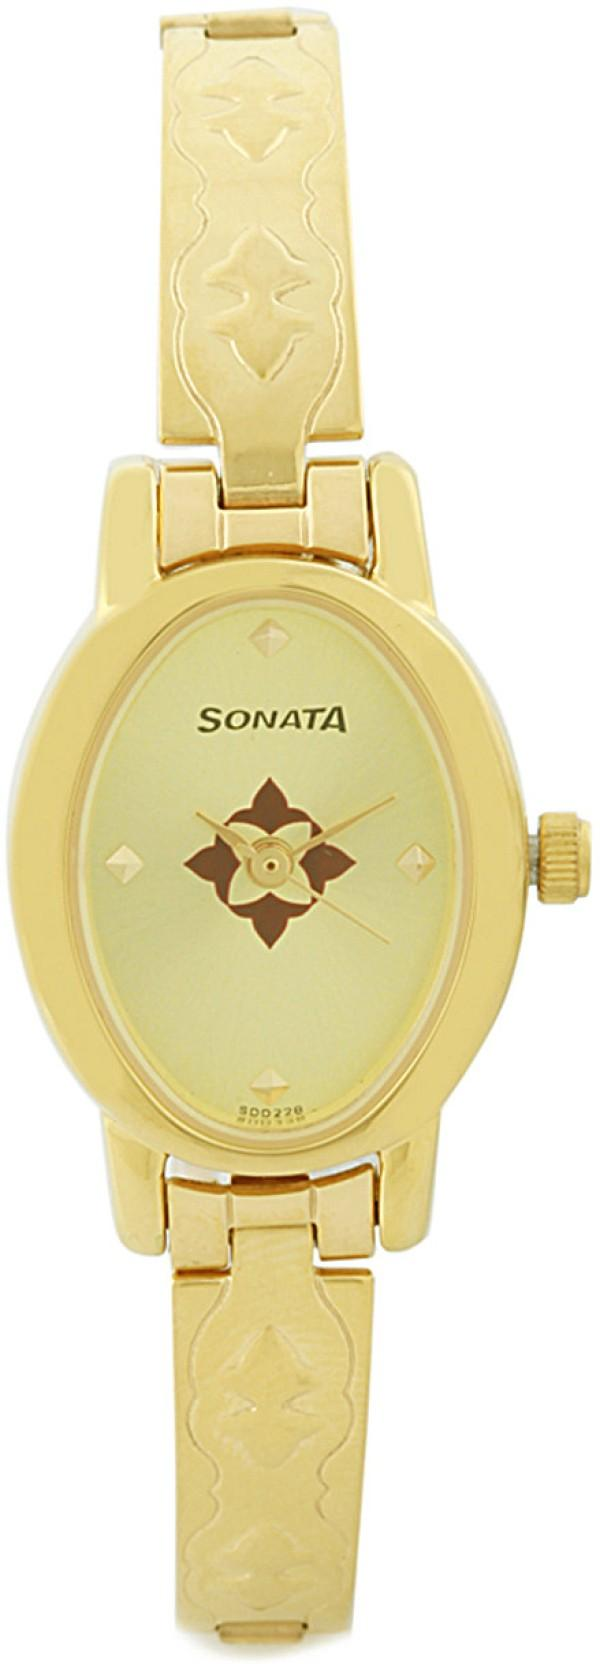 Sonata 8100YM04 Watch - For Women